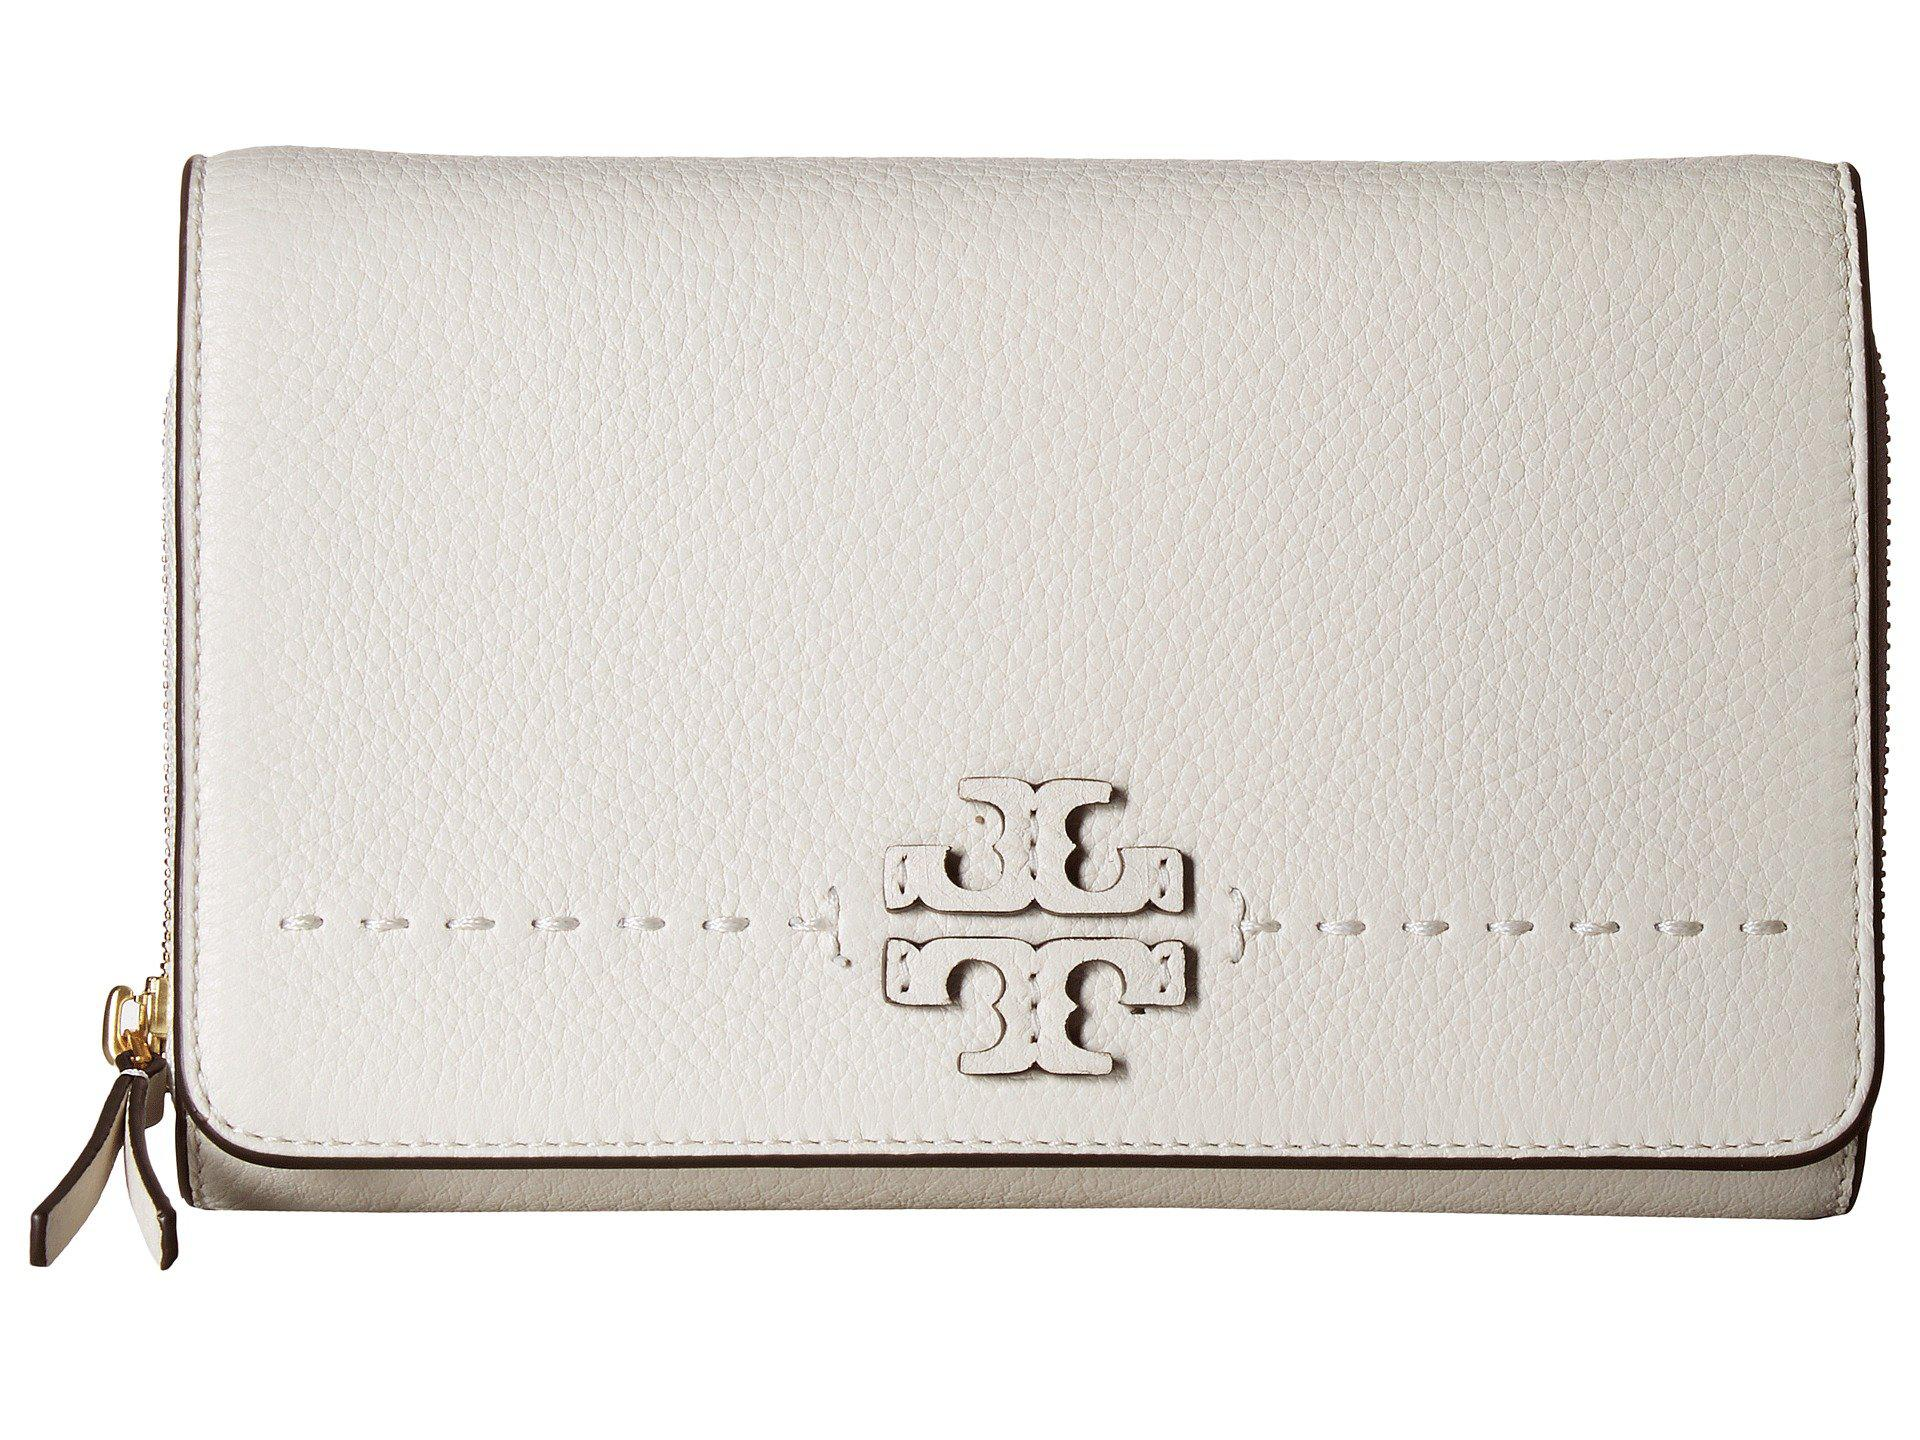 feebcb0d6580d0 Lyst - Tory Burch Mcgraw Flat Wallet Crossbody in White